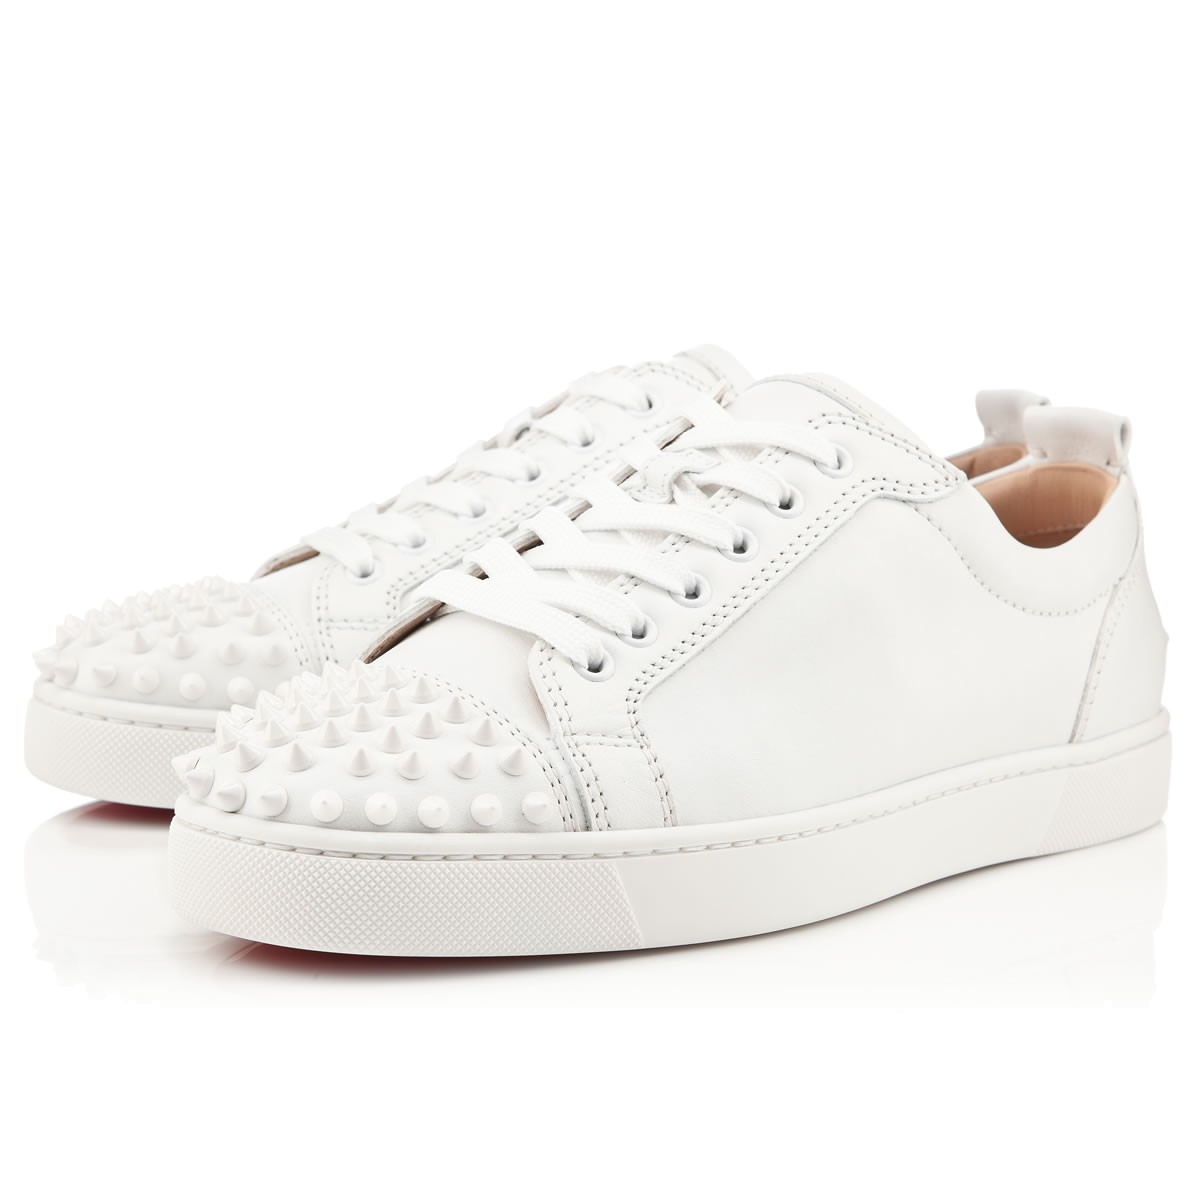 christian louboutin junior spikes price